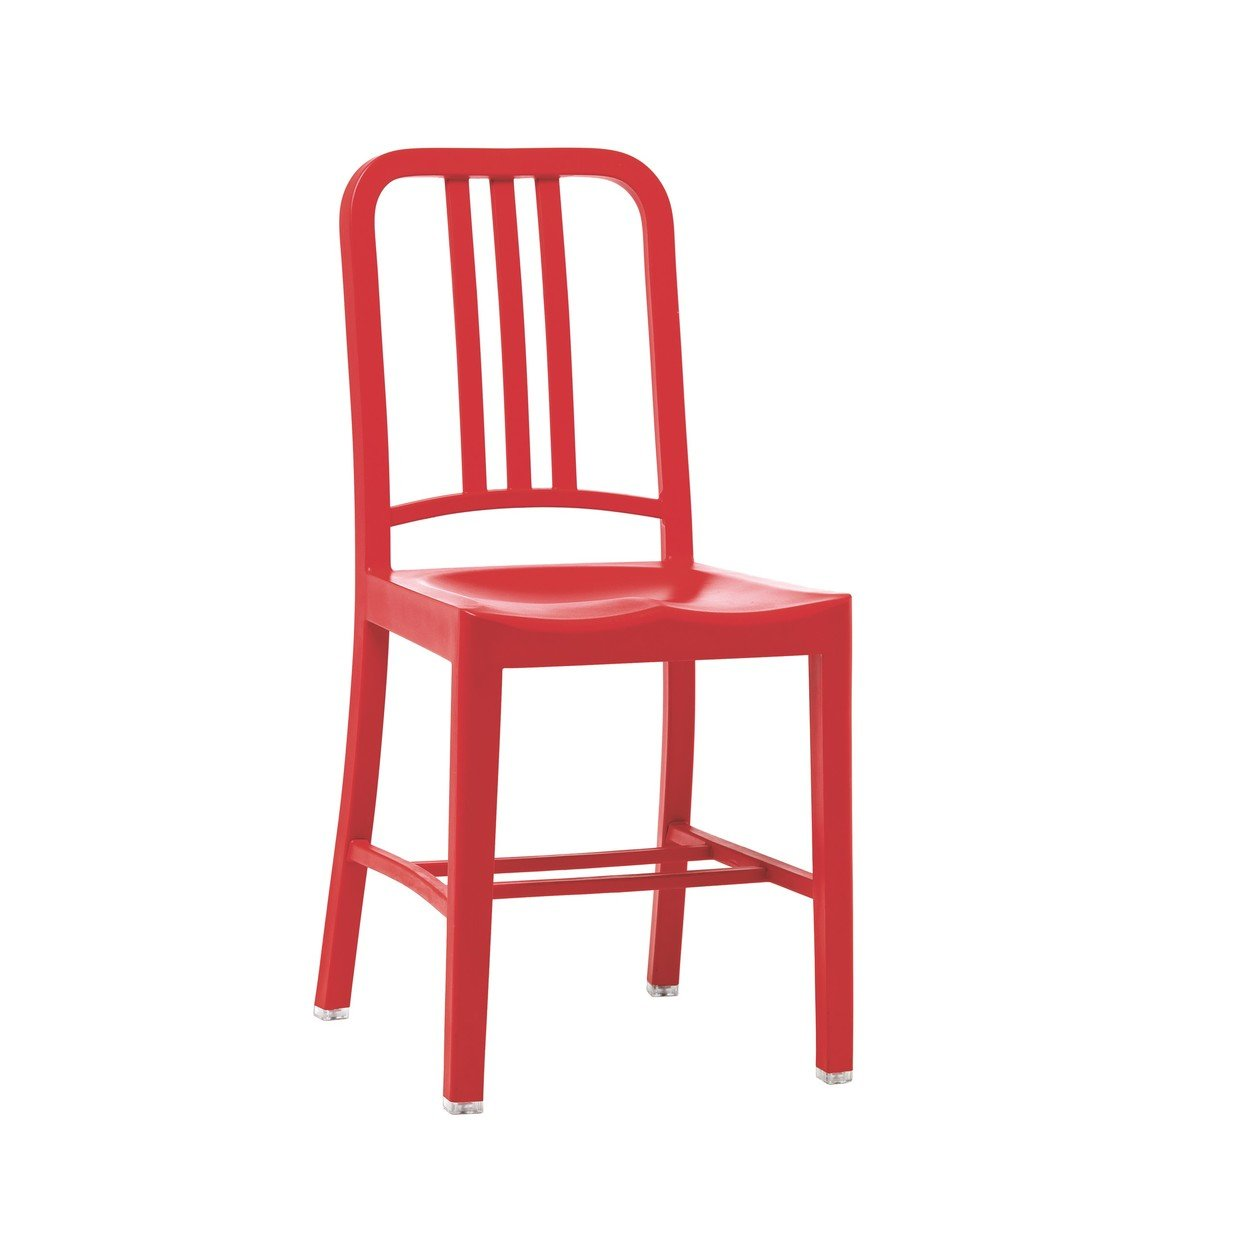 recycled plastic chair  navy® by emeco -